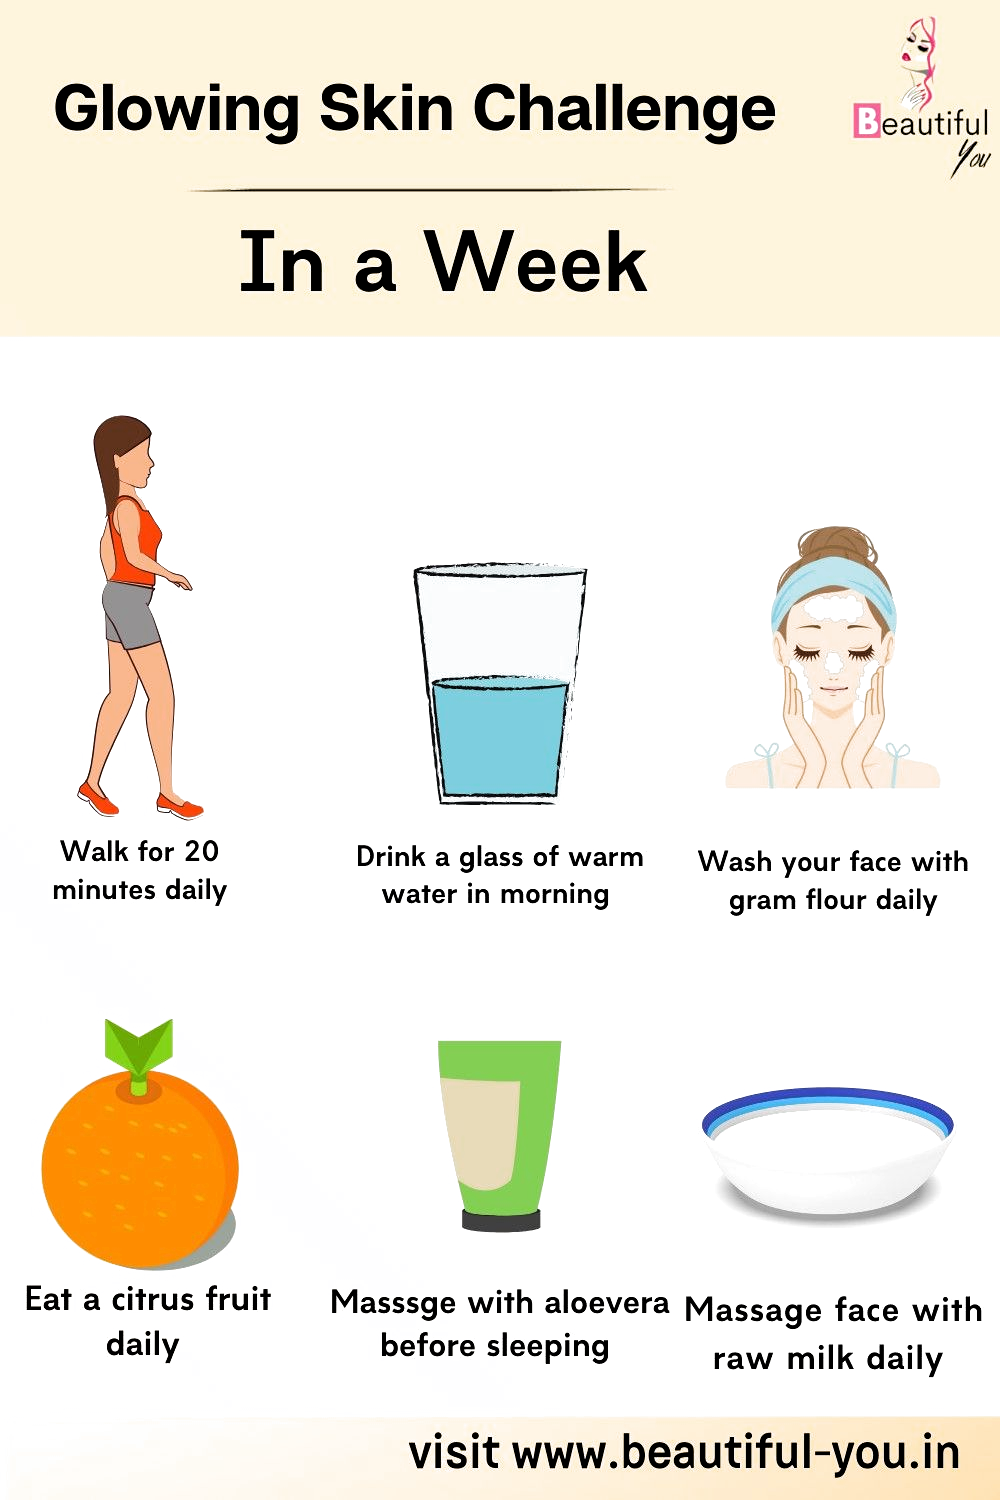 Here Are Simple Tips To Follow To Get A Glowing Skin Naturally At Home In A Week In 2020 Natural Glowing Skin Natural Skin Care Diy Beauty Skin Care Routine